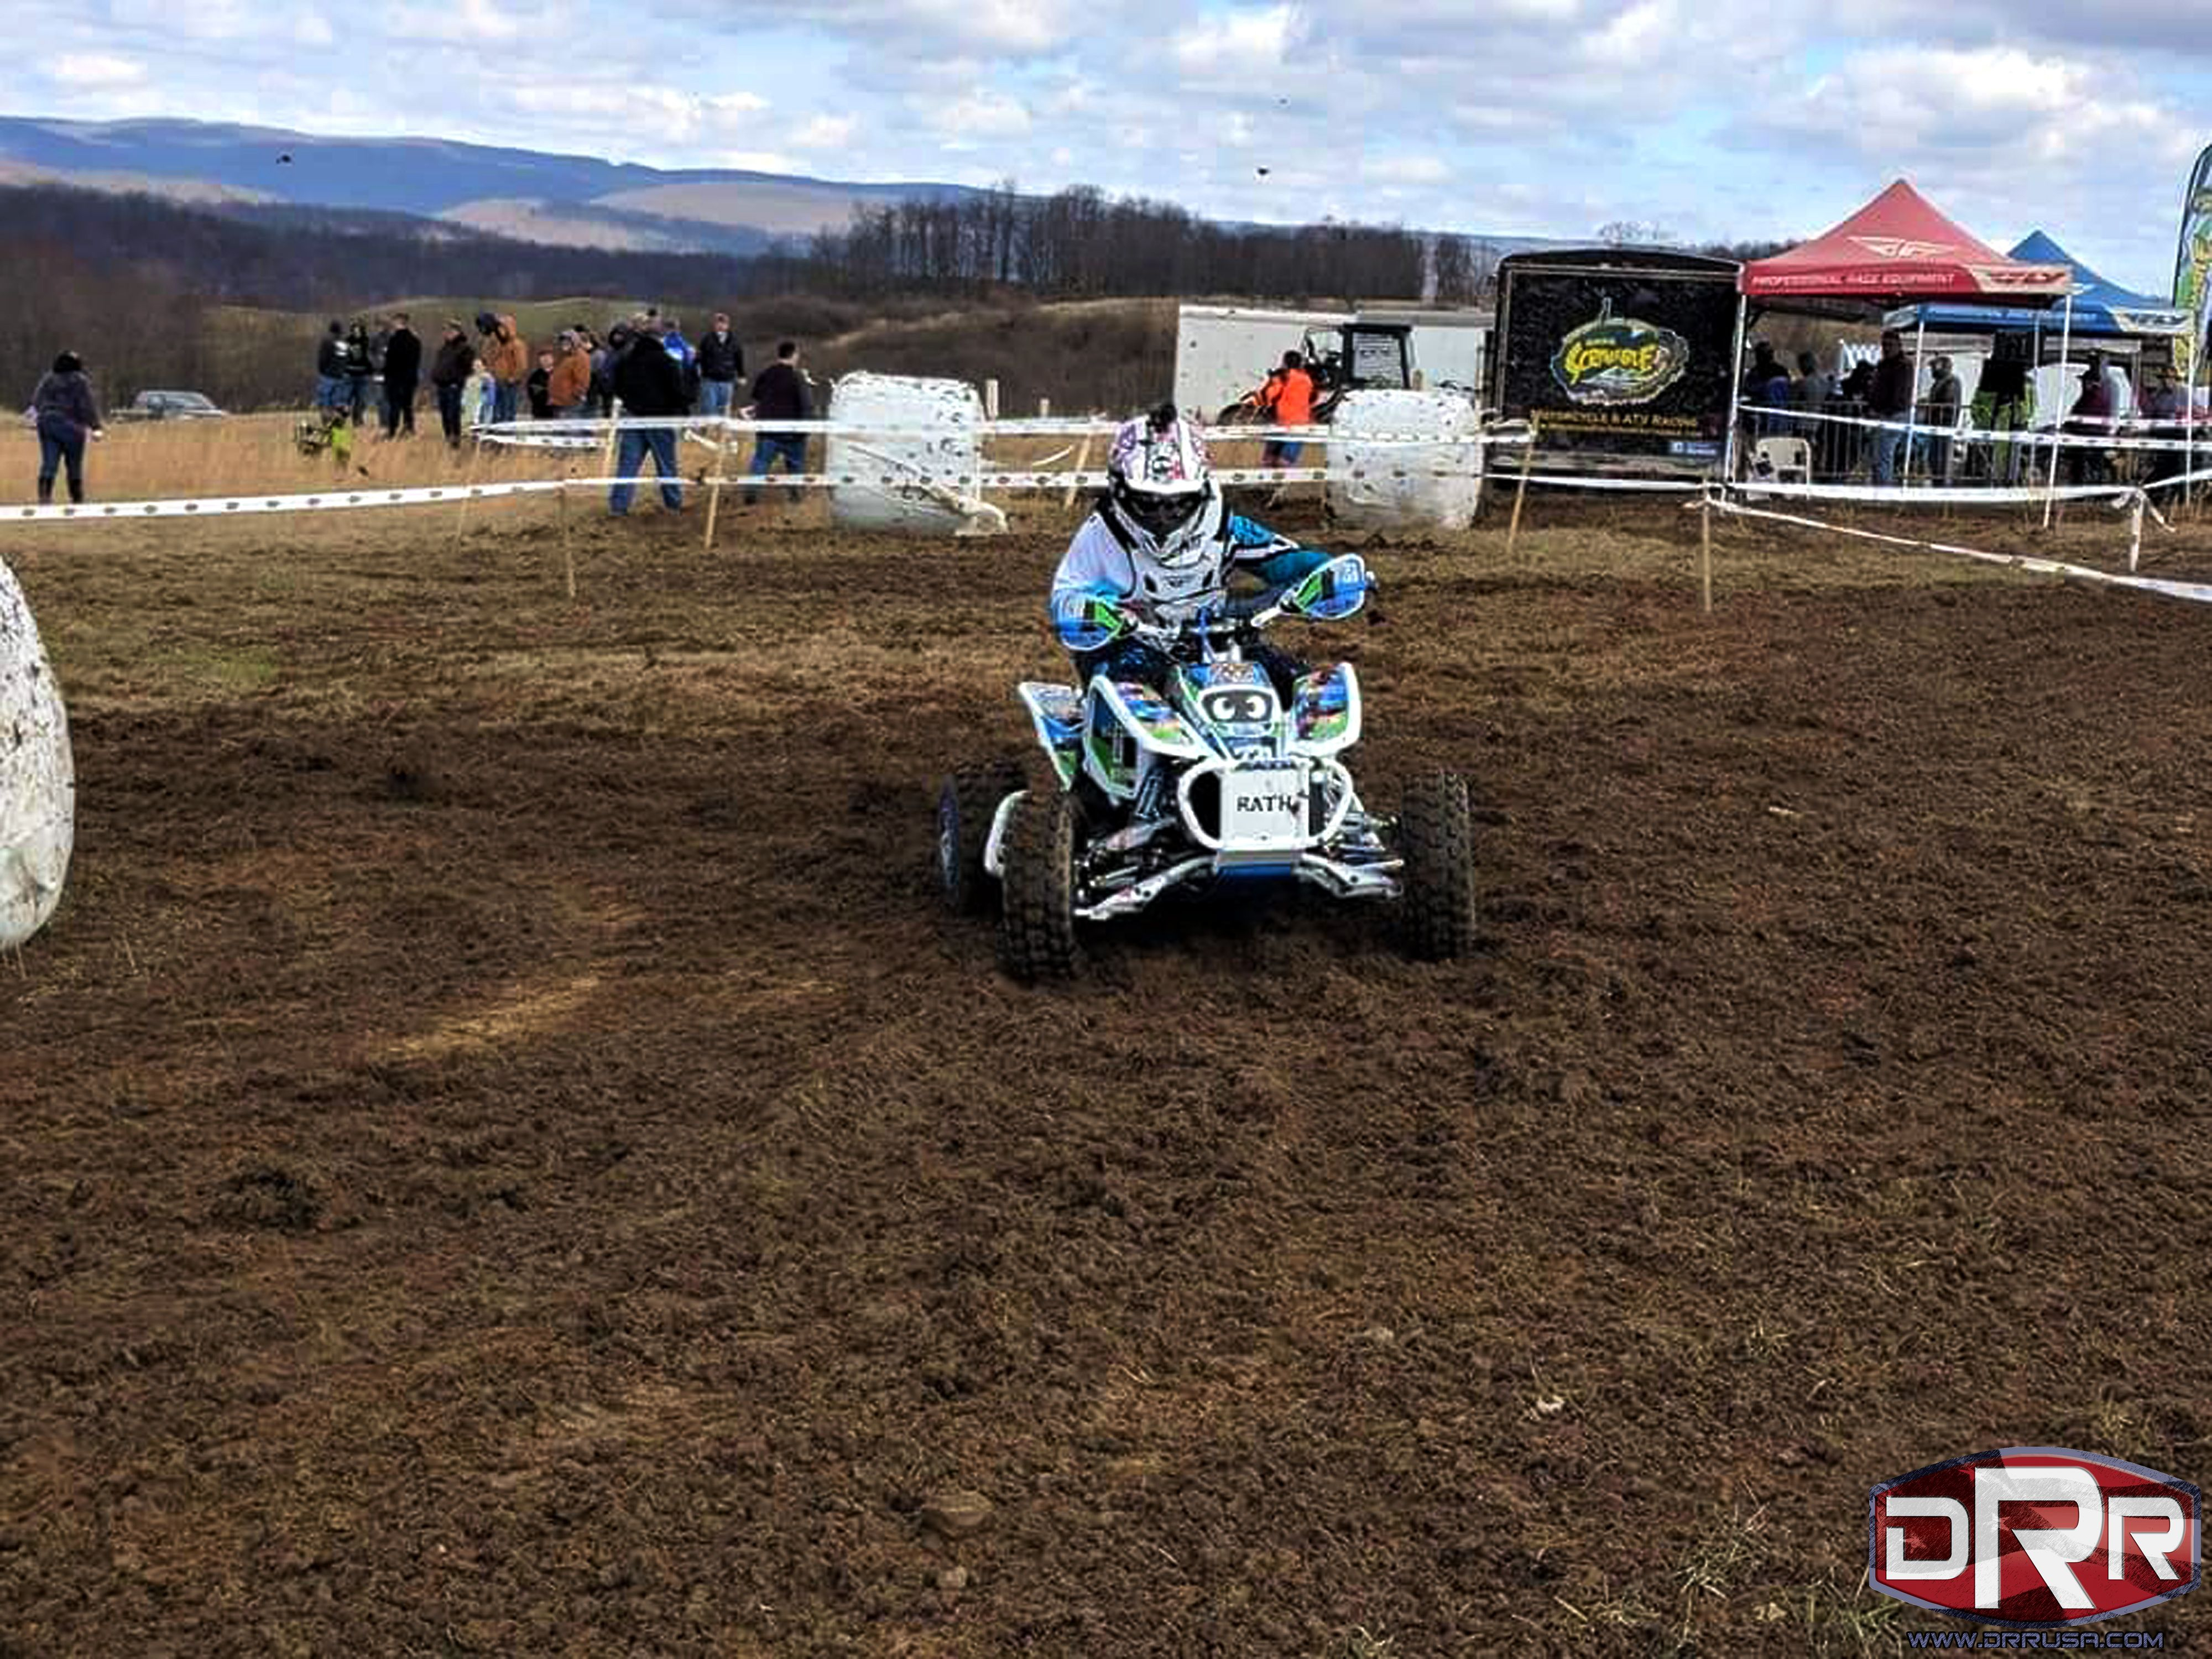 medium resolution of emily hanlin at the mountain state harescramble on 3 31 18 riding her drr drx 90cc atv